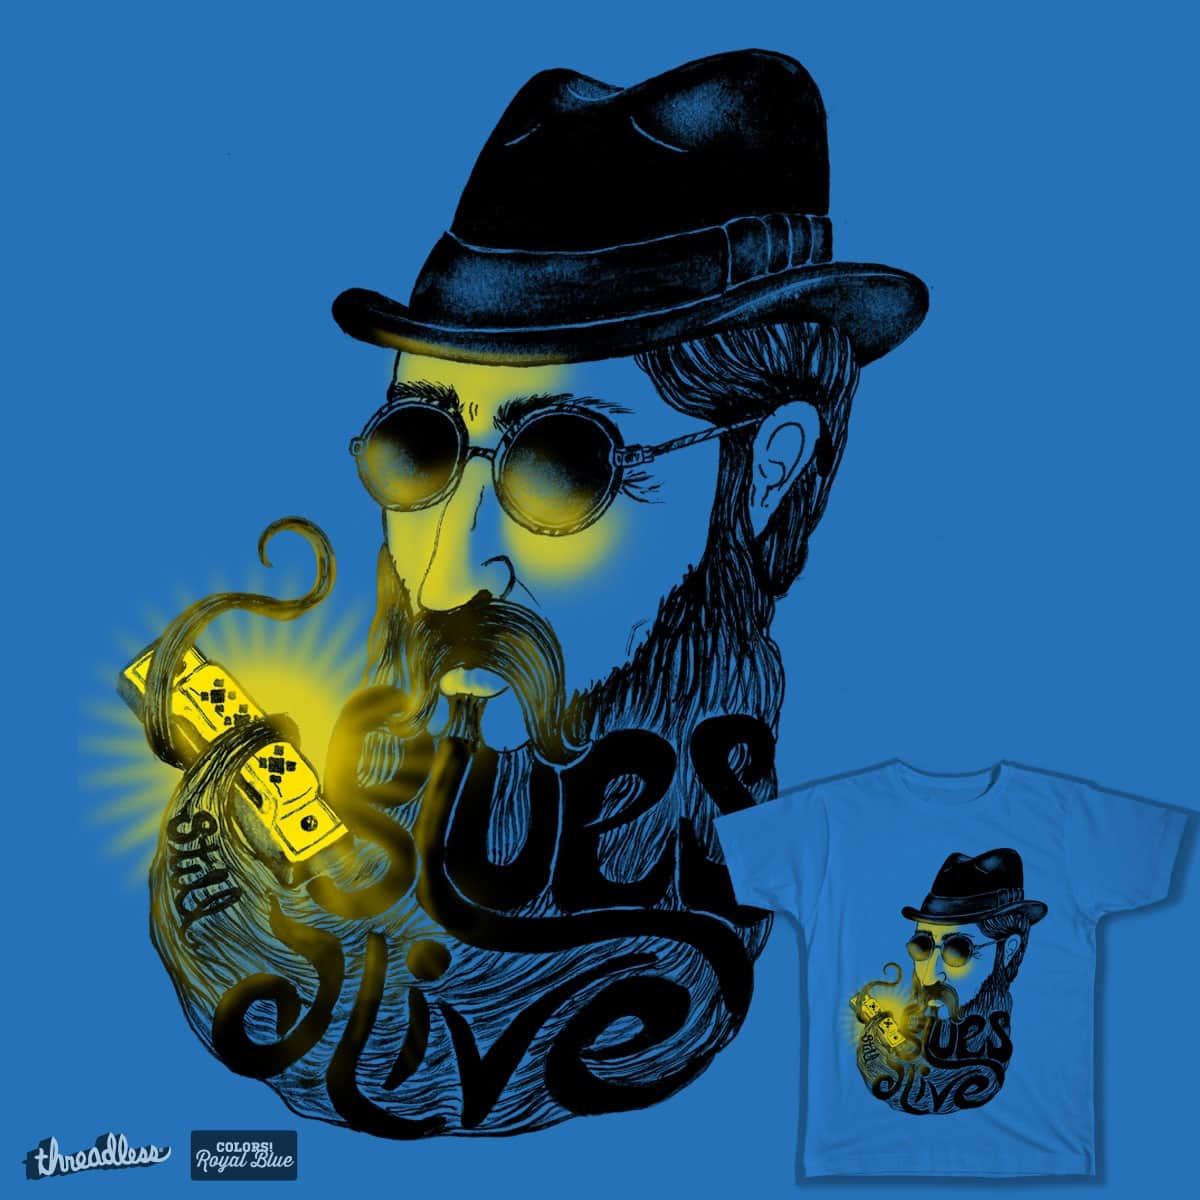 Blues still alive by SACHICO on Threadless